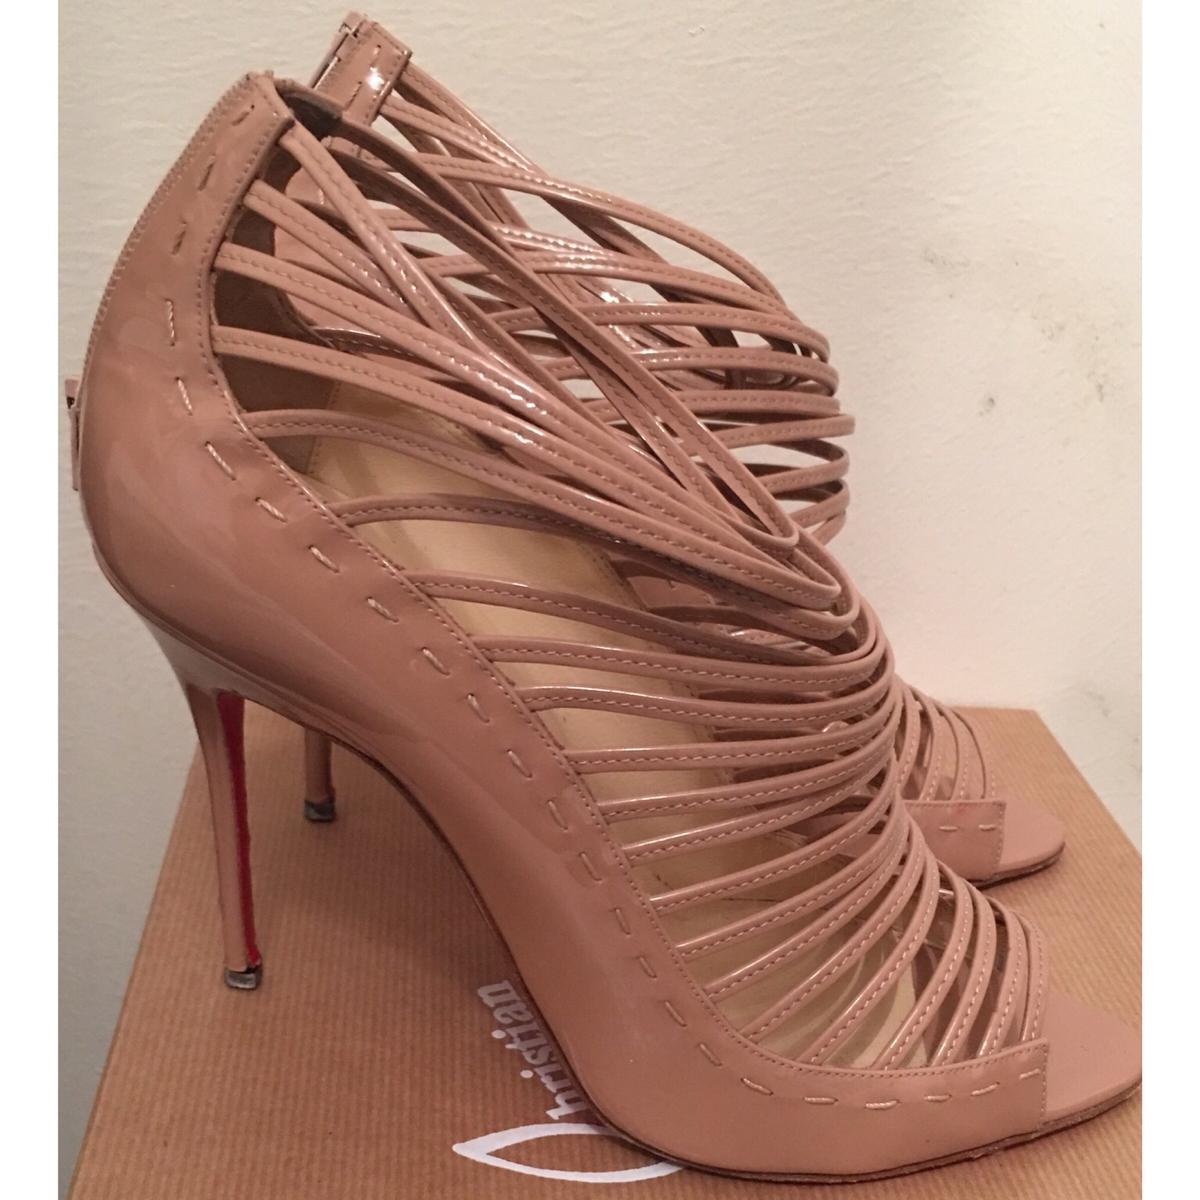 official photos 5e0fb 6ae0d Christian Louboutin Shoes